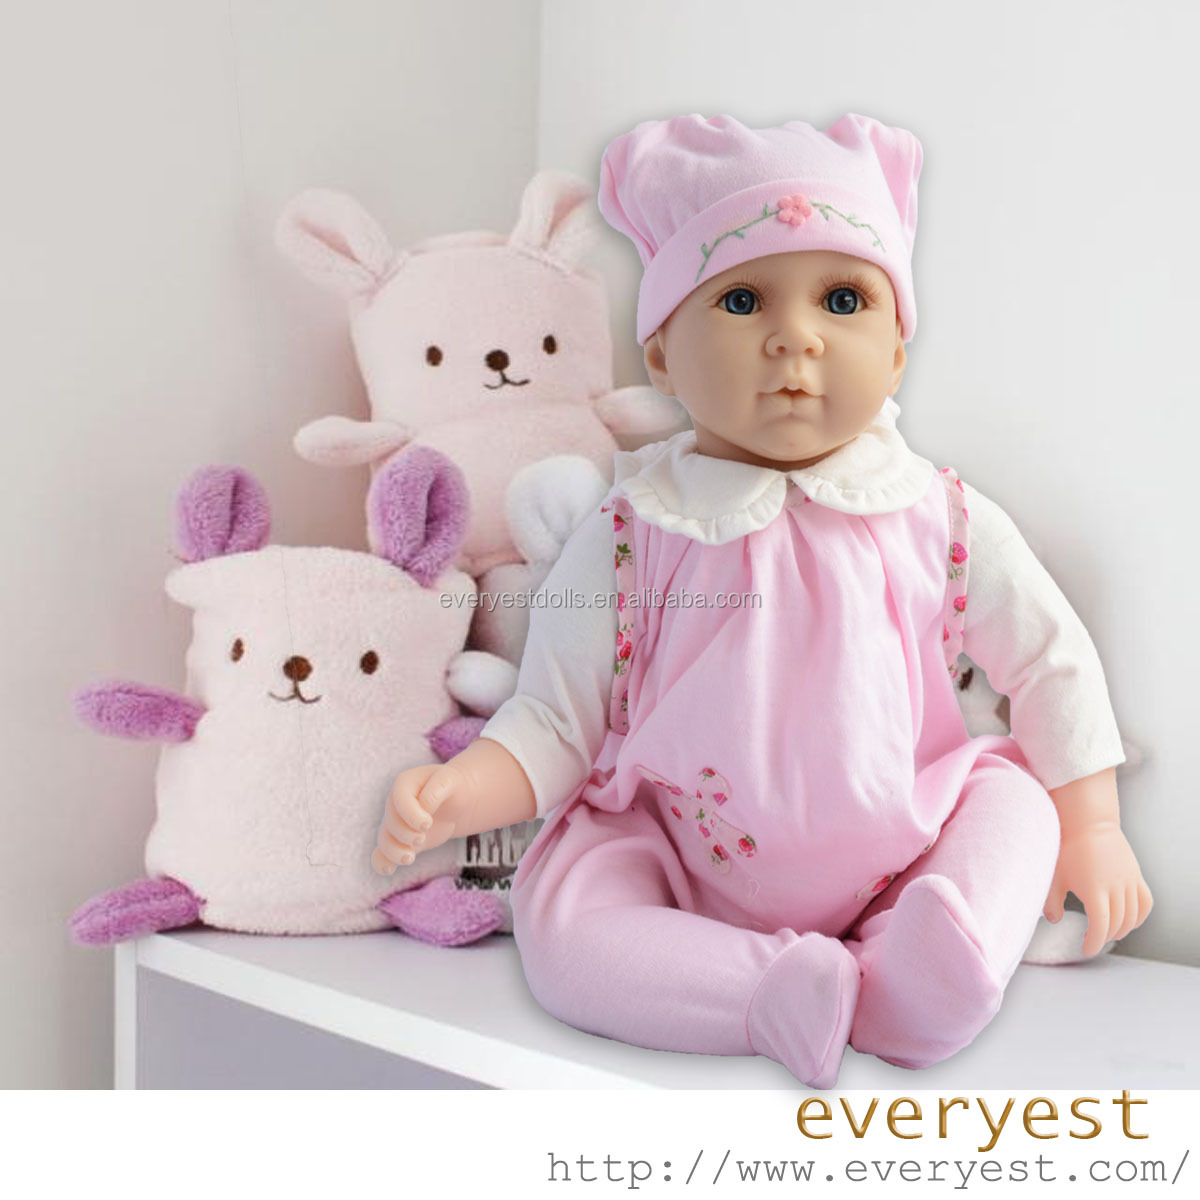 2015 small vinyl baby dolls,real looking cute baby dolls,sweet